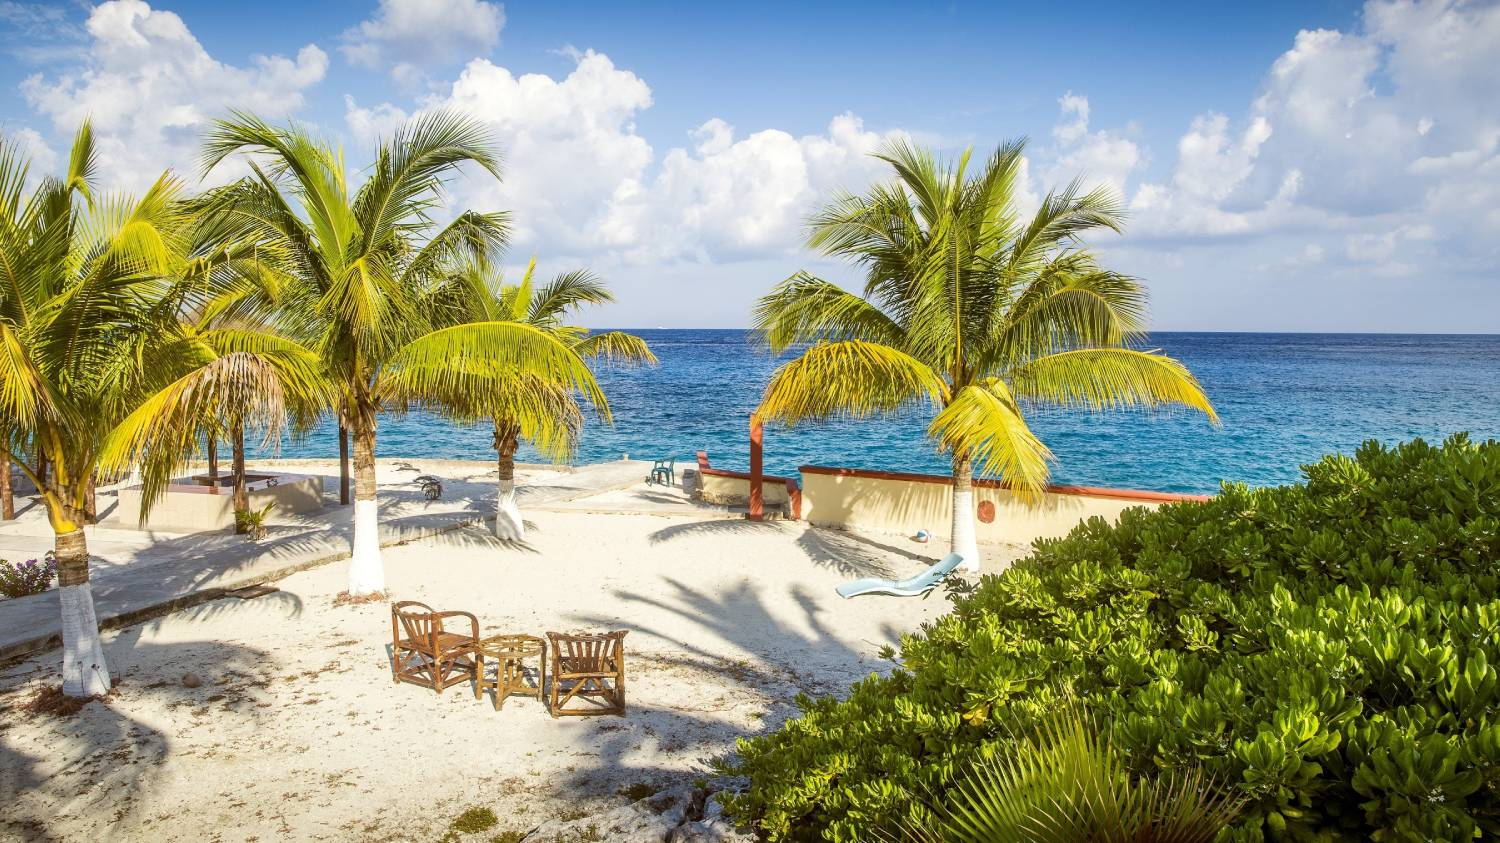 Cozumel - The Best Places To Visit In Mexico